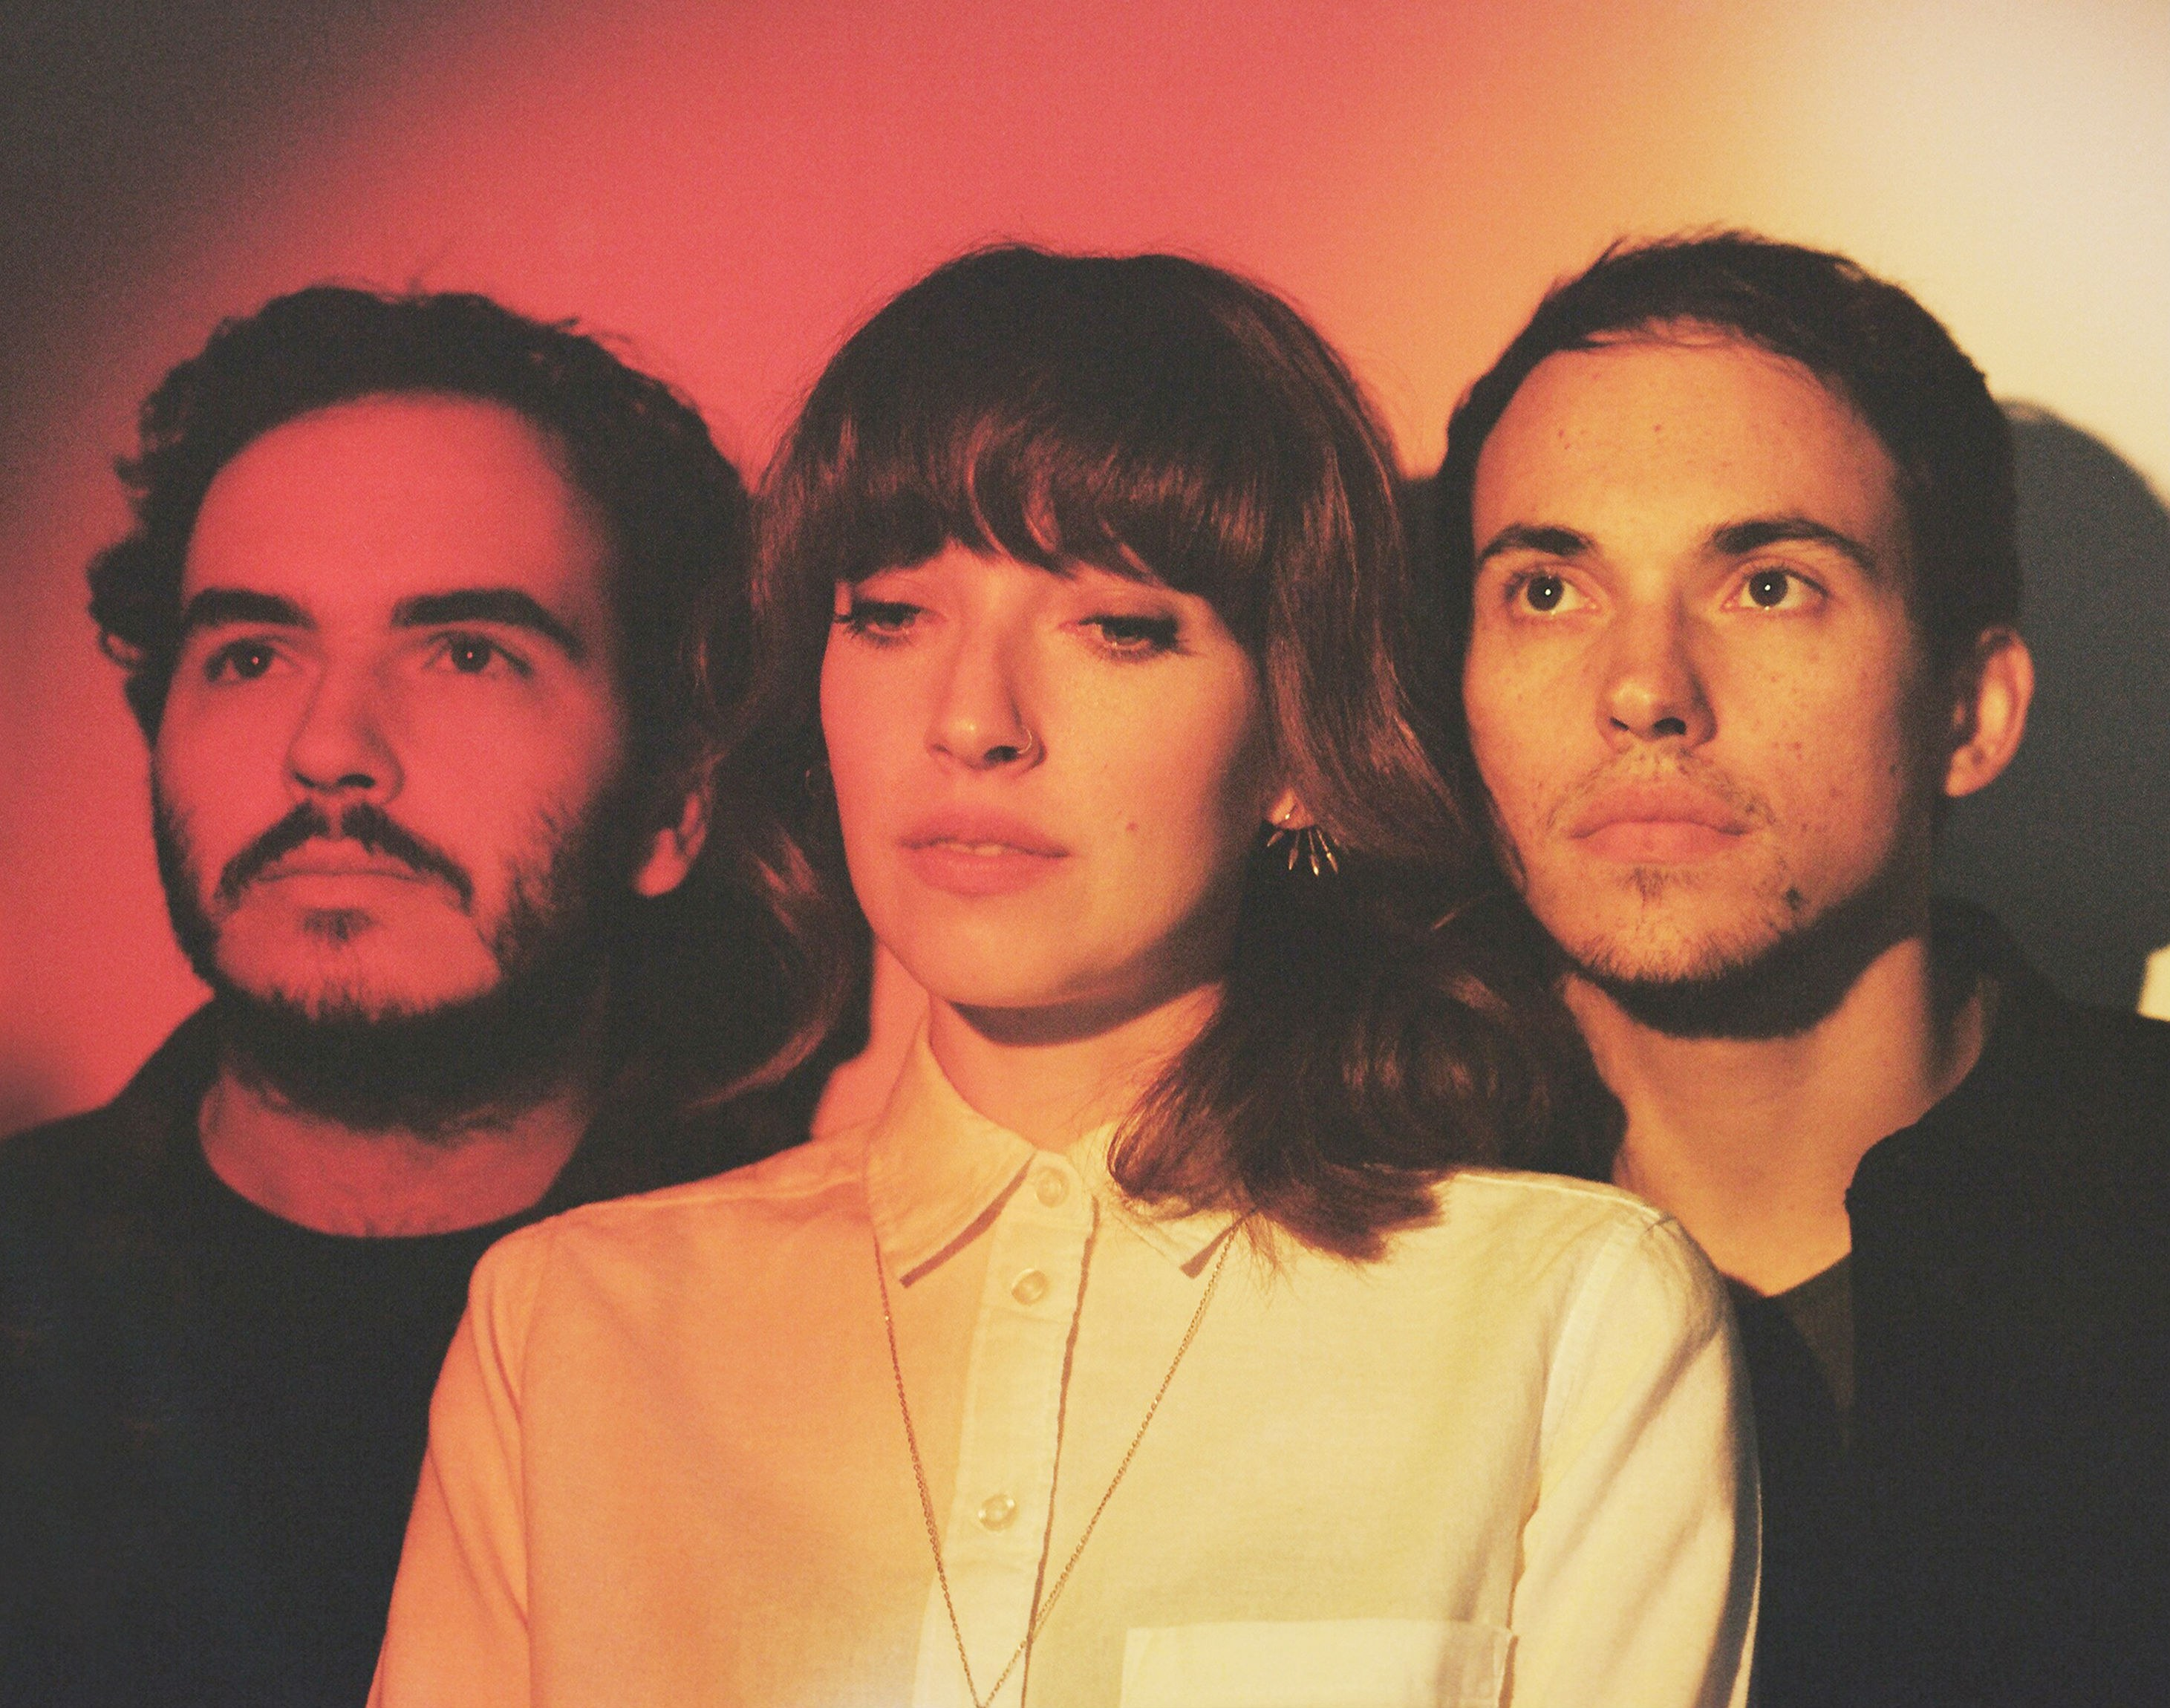 Daughter share 'Bedtime Mix' on Radio 1